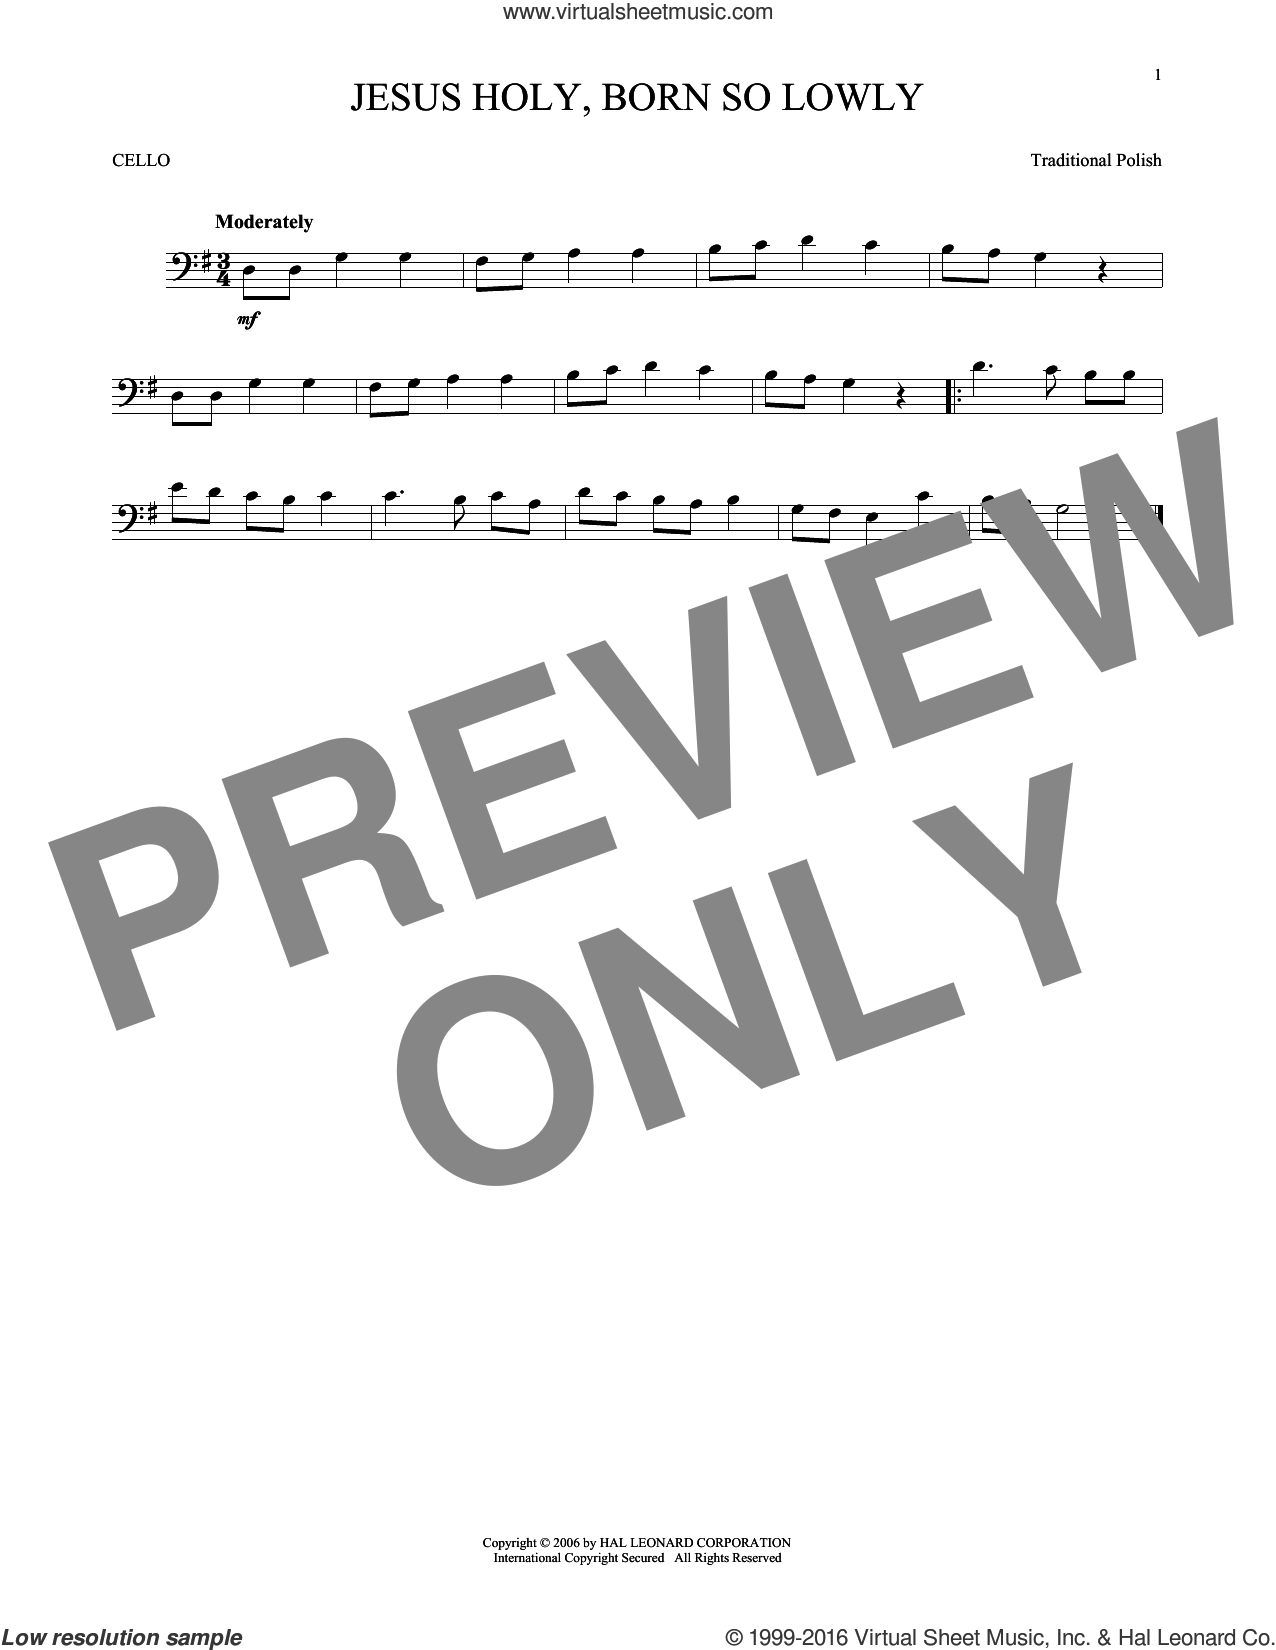 Jesus Holy, Born So Lowly sheet music for cello solo, intermediate skill level